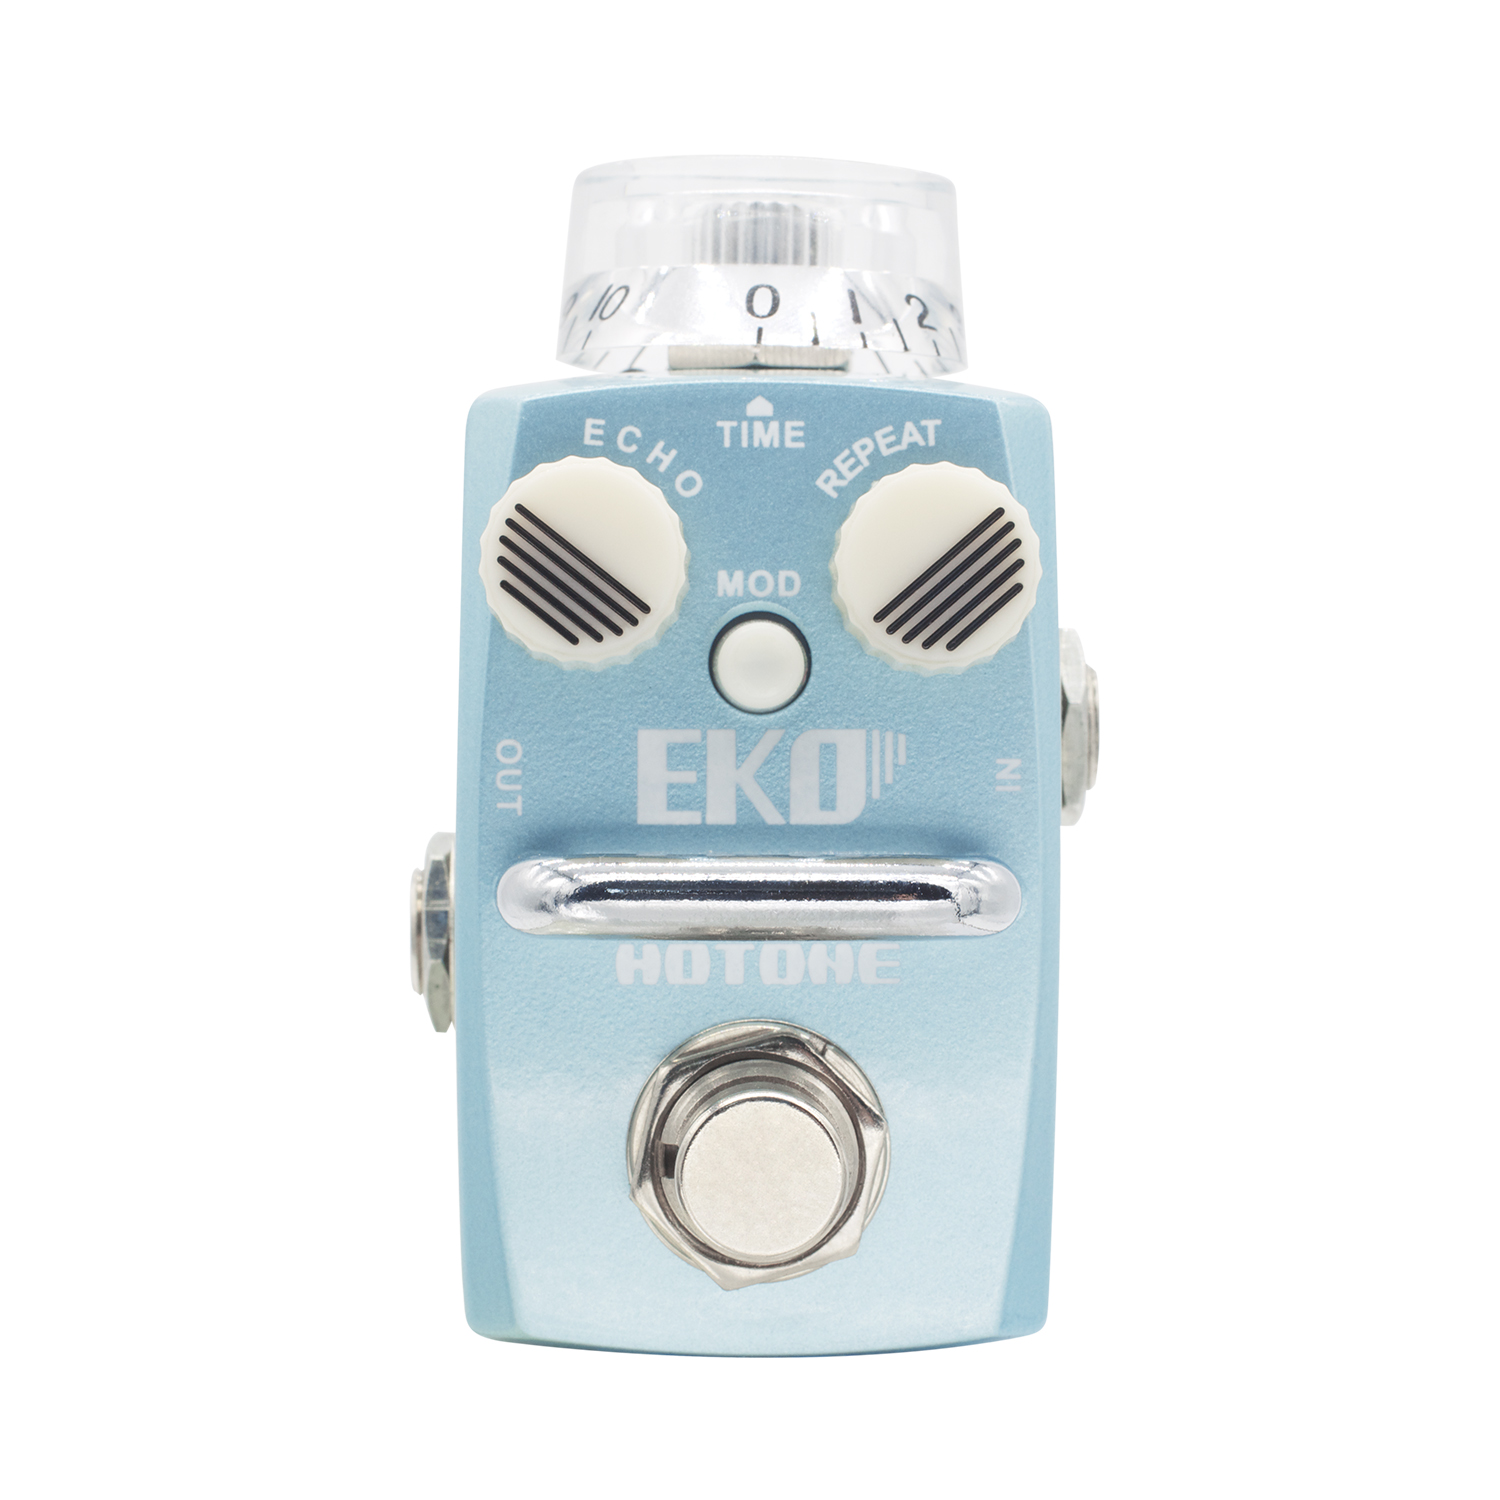 Hotone EKO Delay Effect Pedal True Bypass Digital/Analog Delay Stompbox Effects for Electric Guitar aroma adl 1 true bypass delay electric guitar effect pedal high quality aluminum alloy guitar accessories delay range 50 400ms